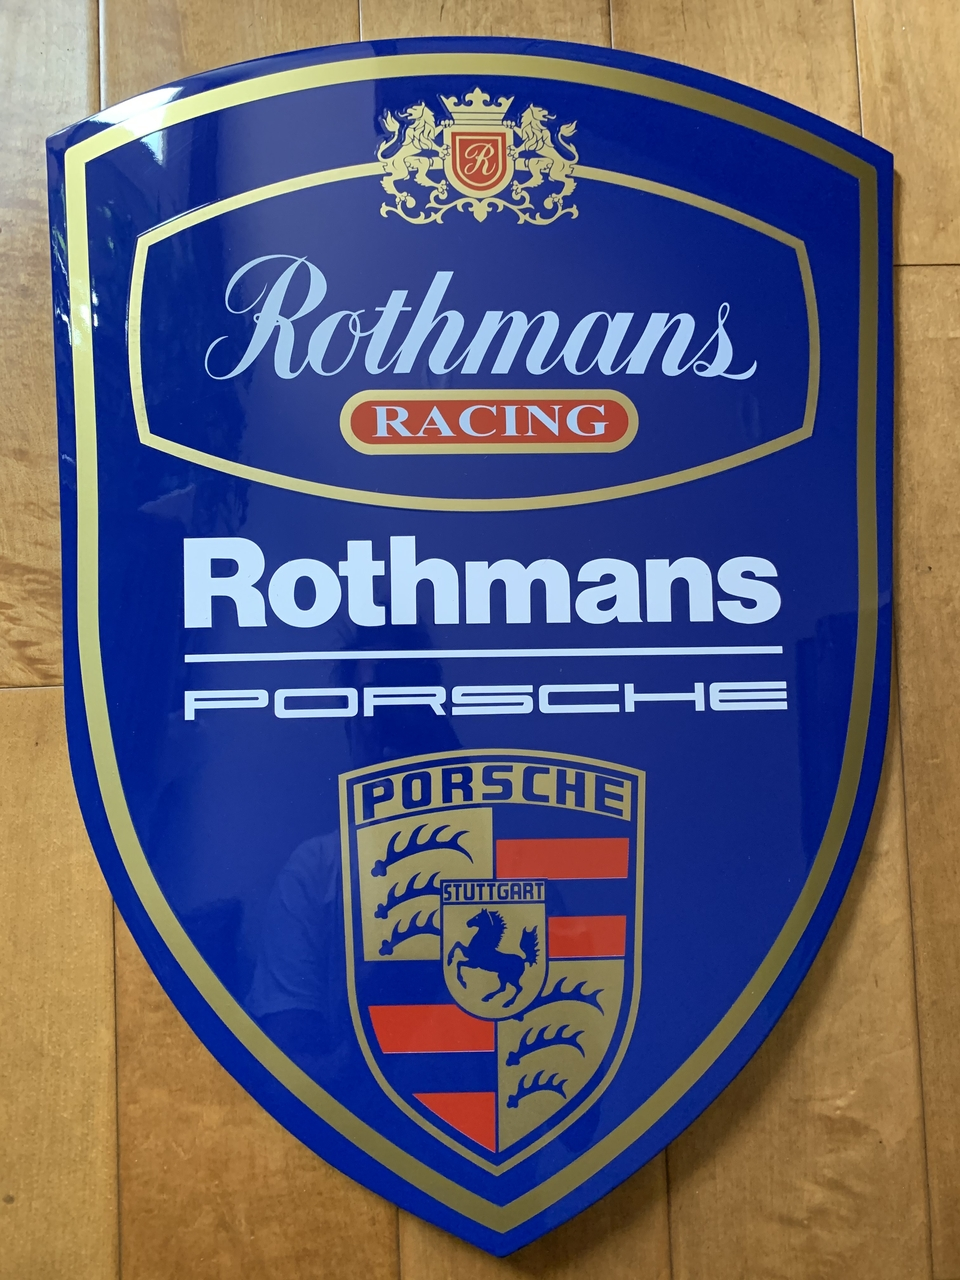 "Rothmans Racing Crest (22"" x 15 3/4"")"